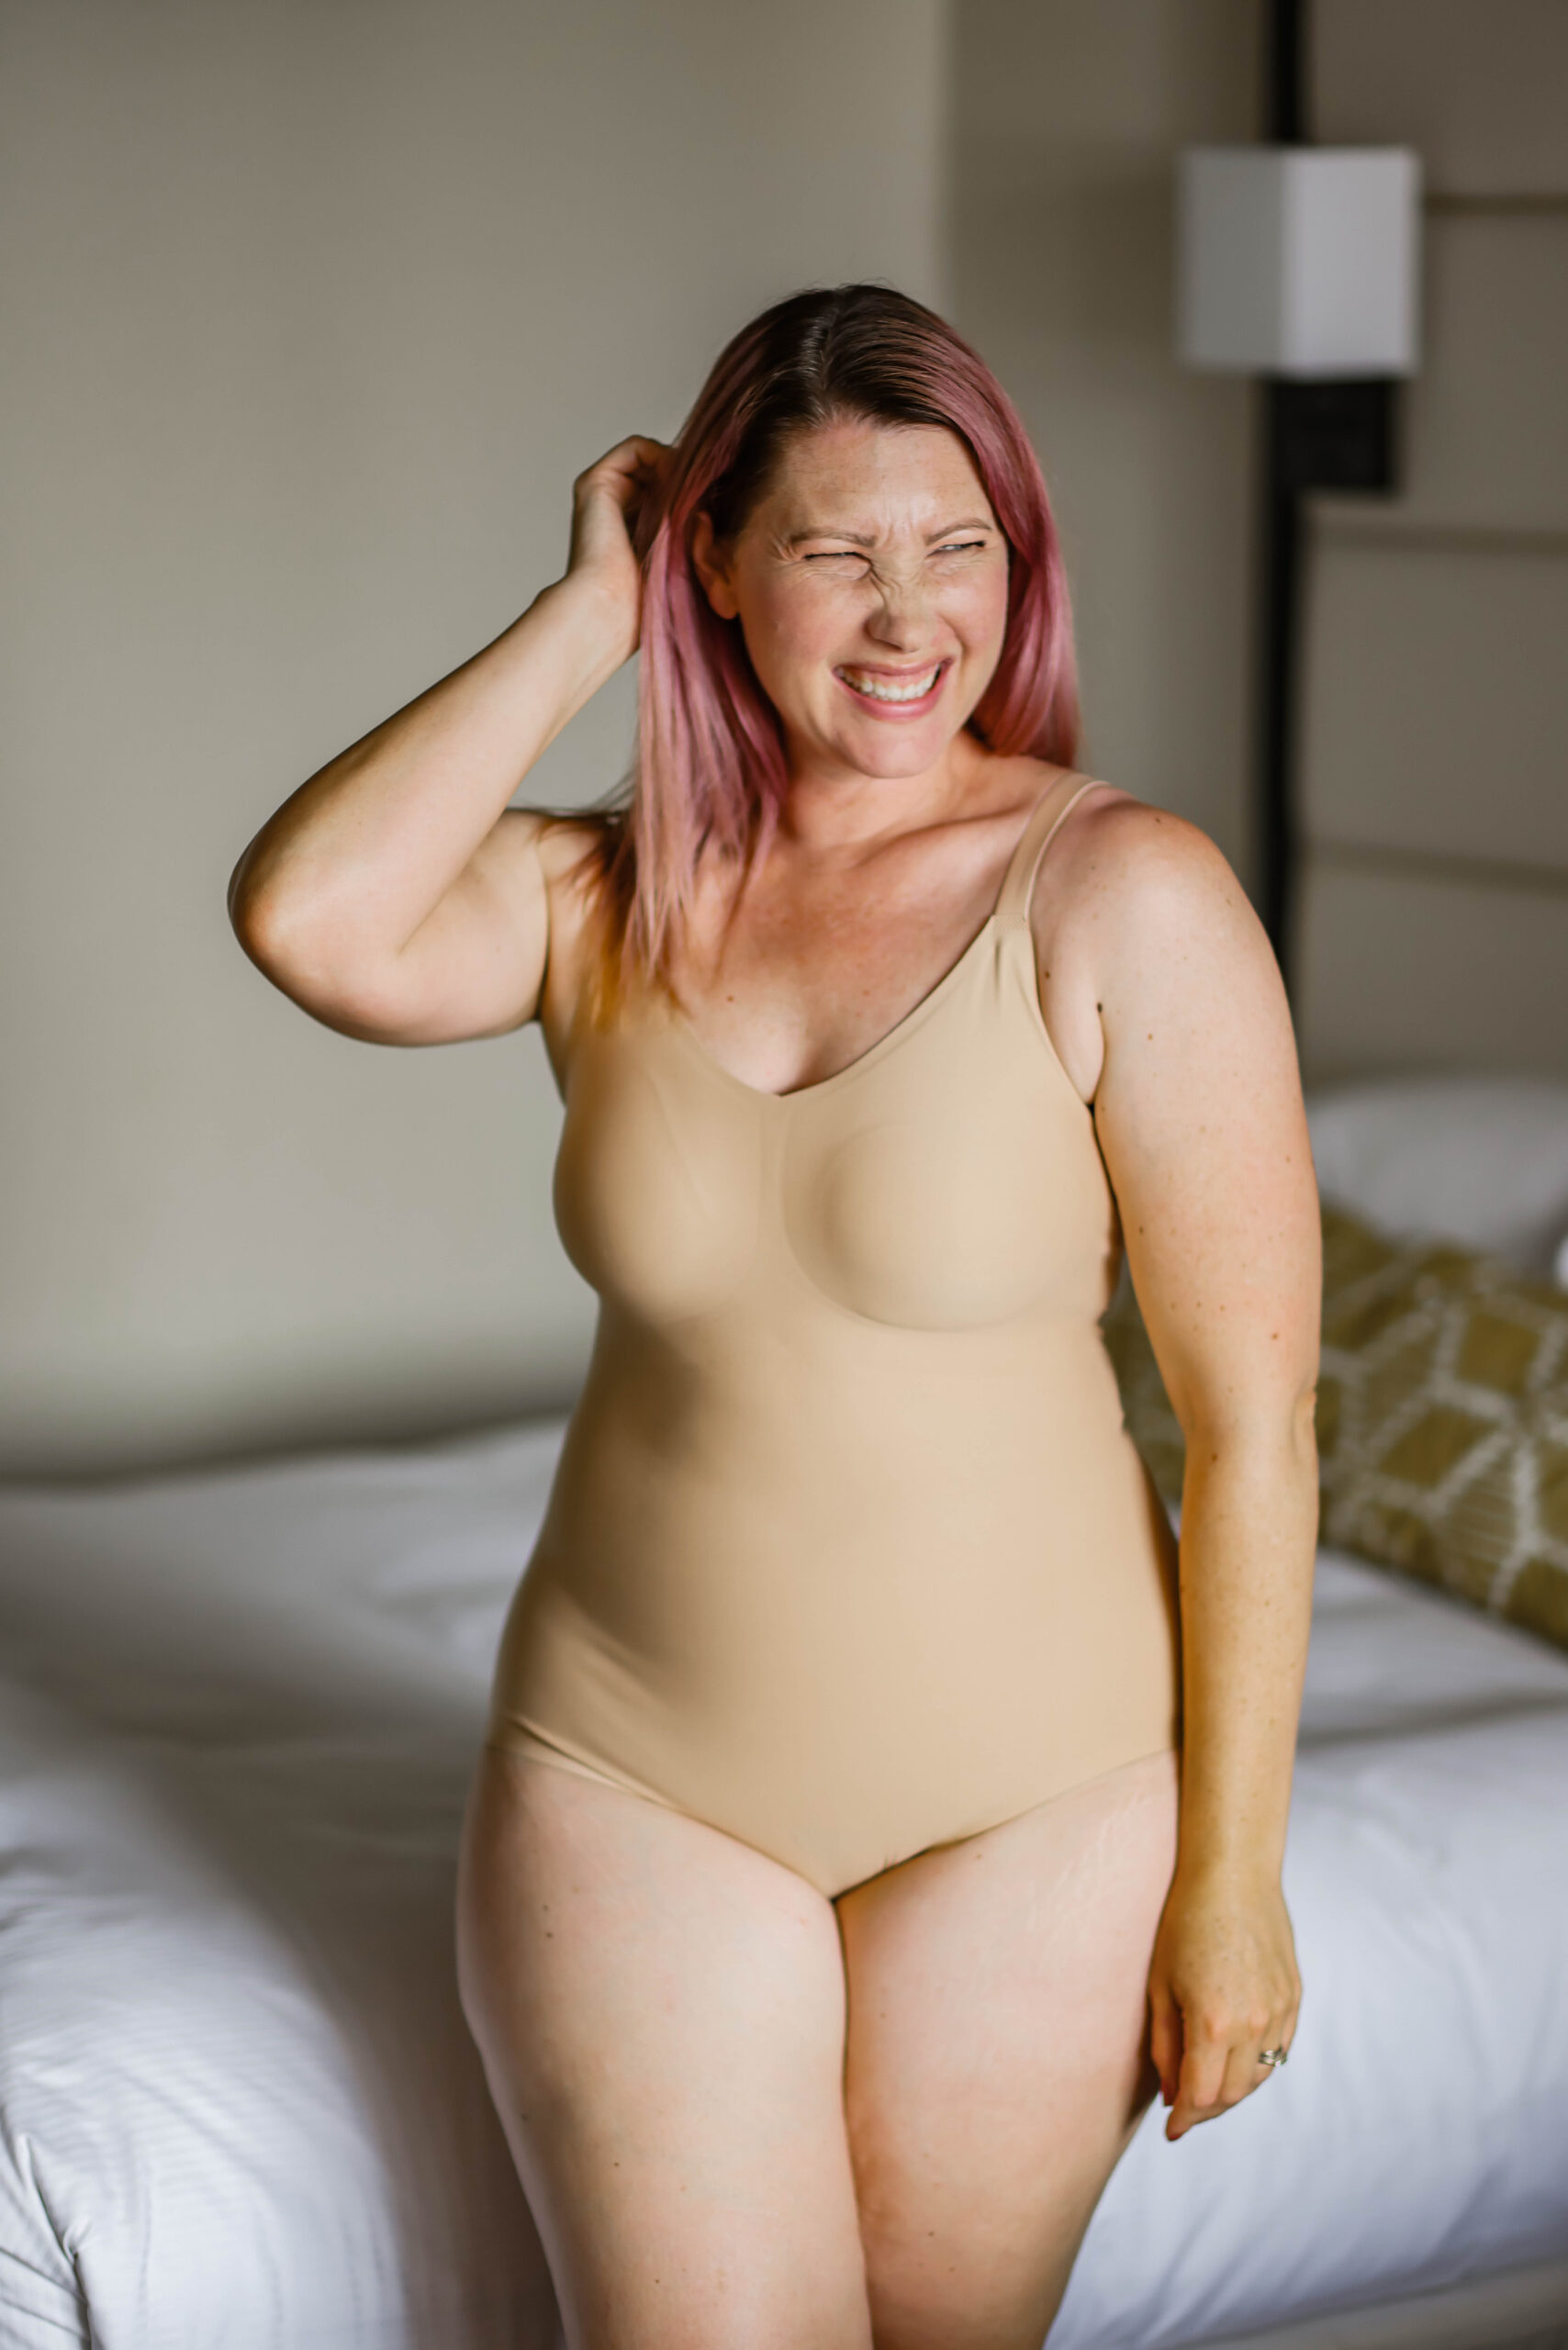 Looking for the best shapewear for dresses (both casual and formal)? These are some of my favorite options!